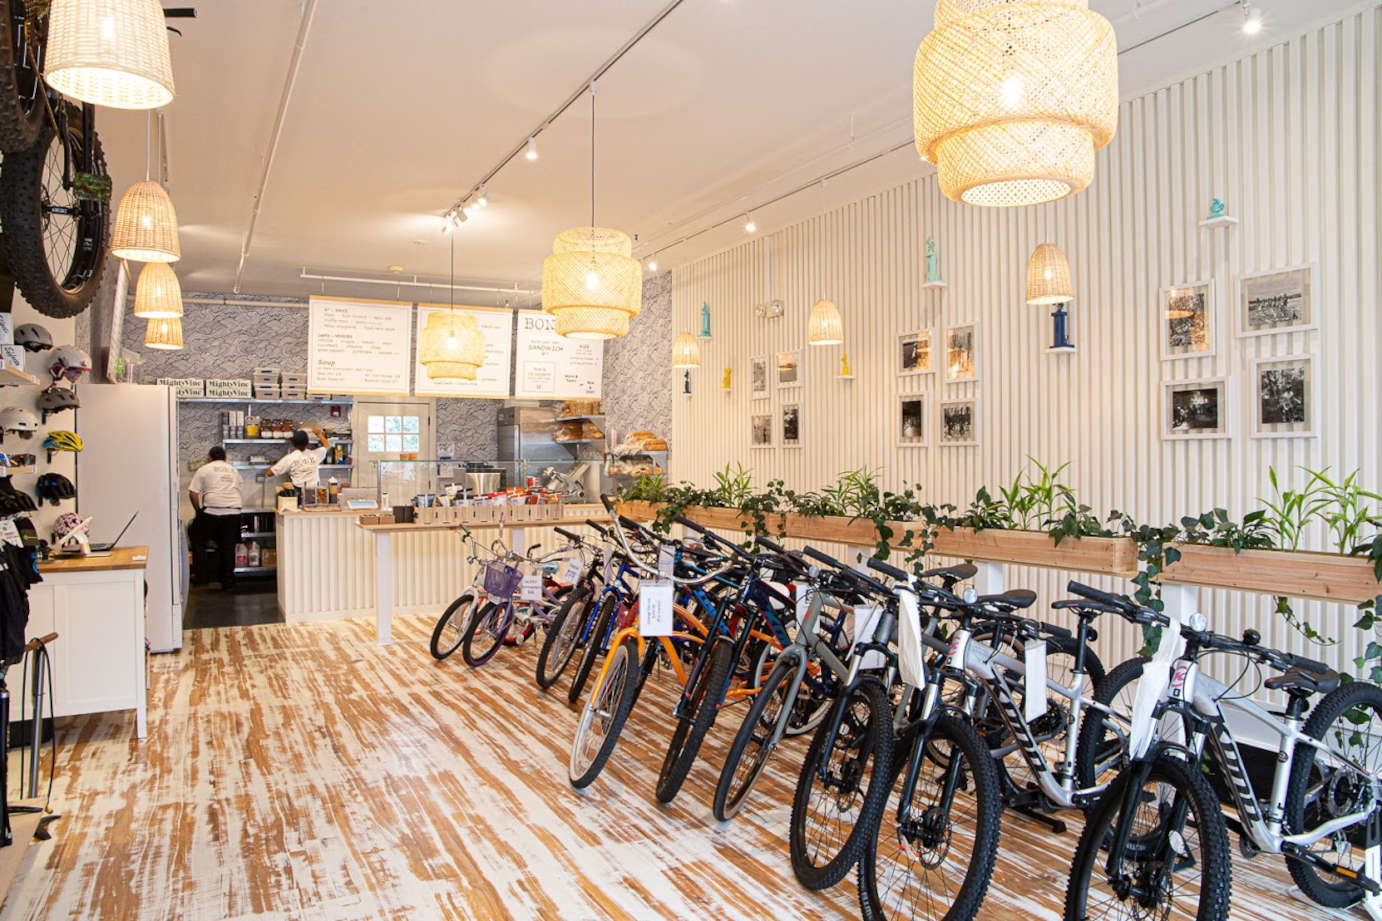 Interior, many bikes in a row